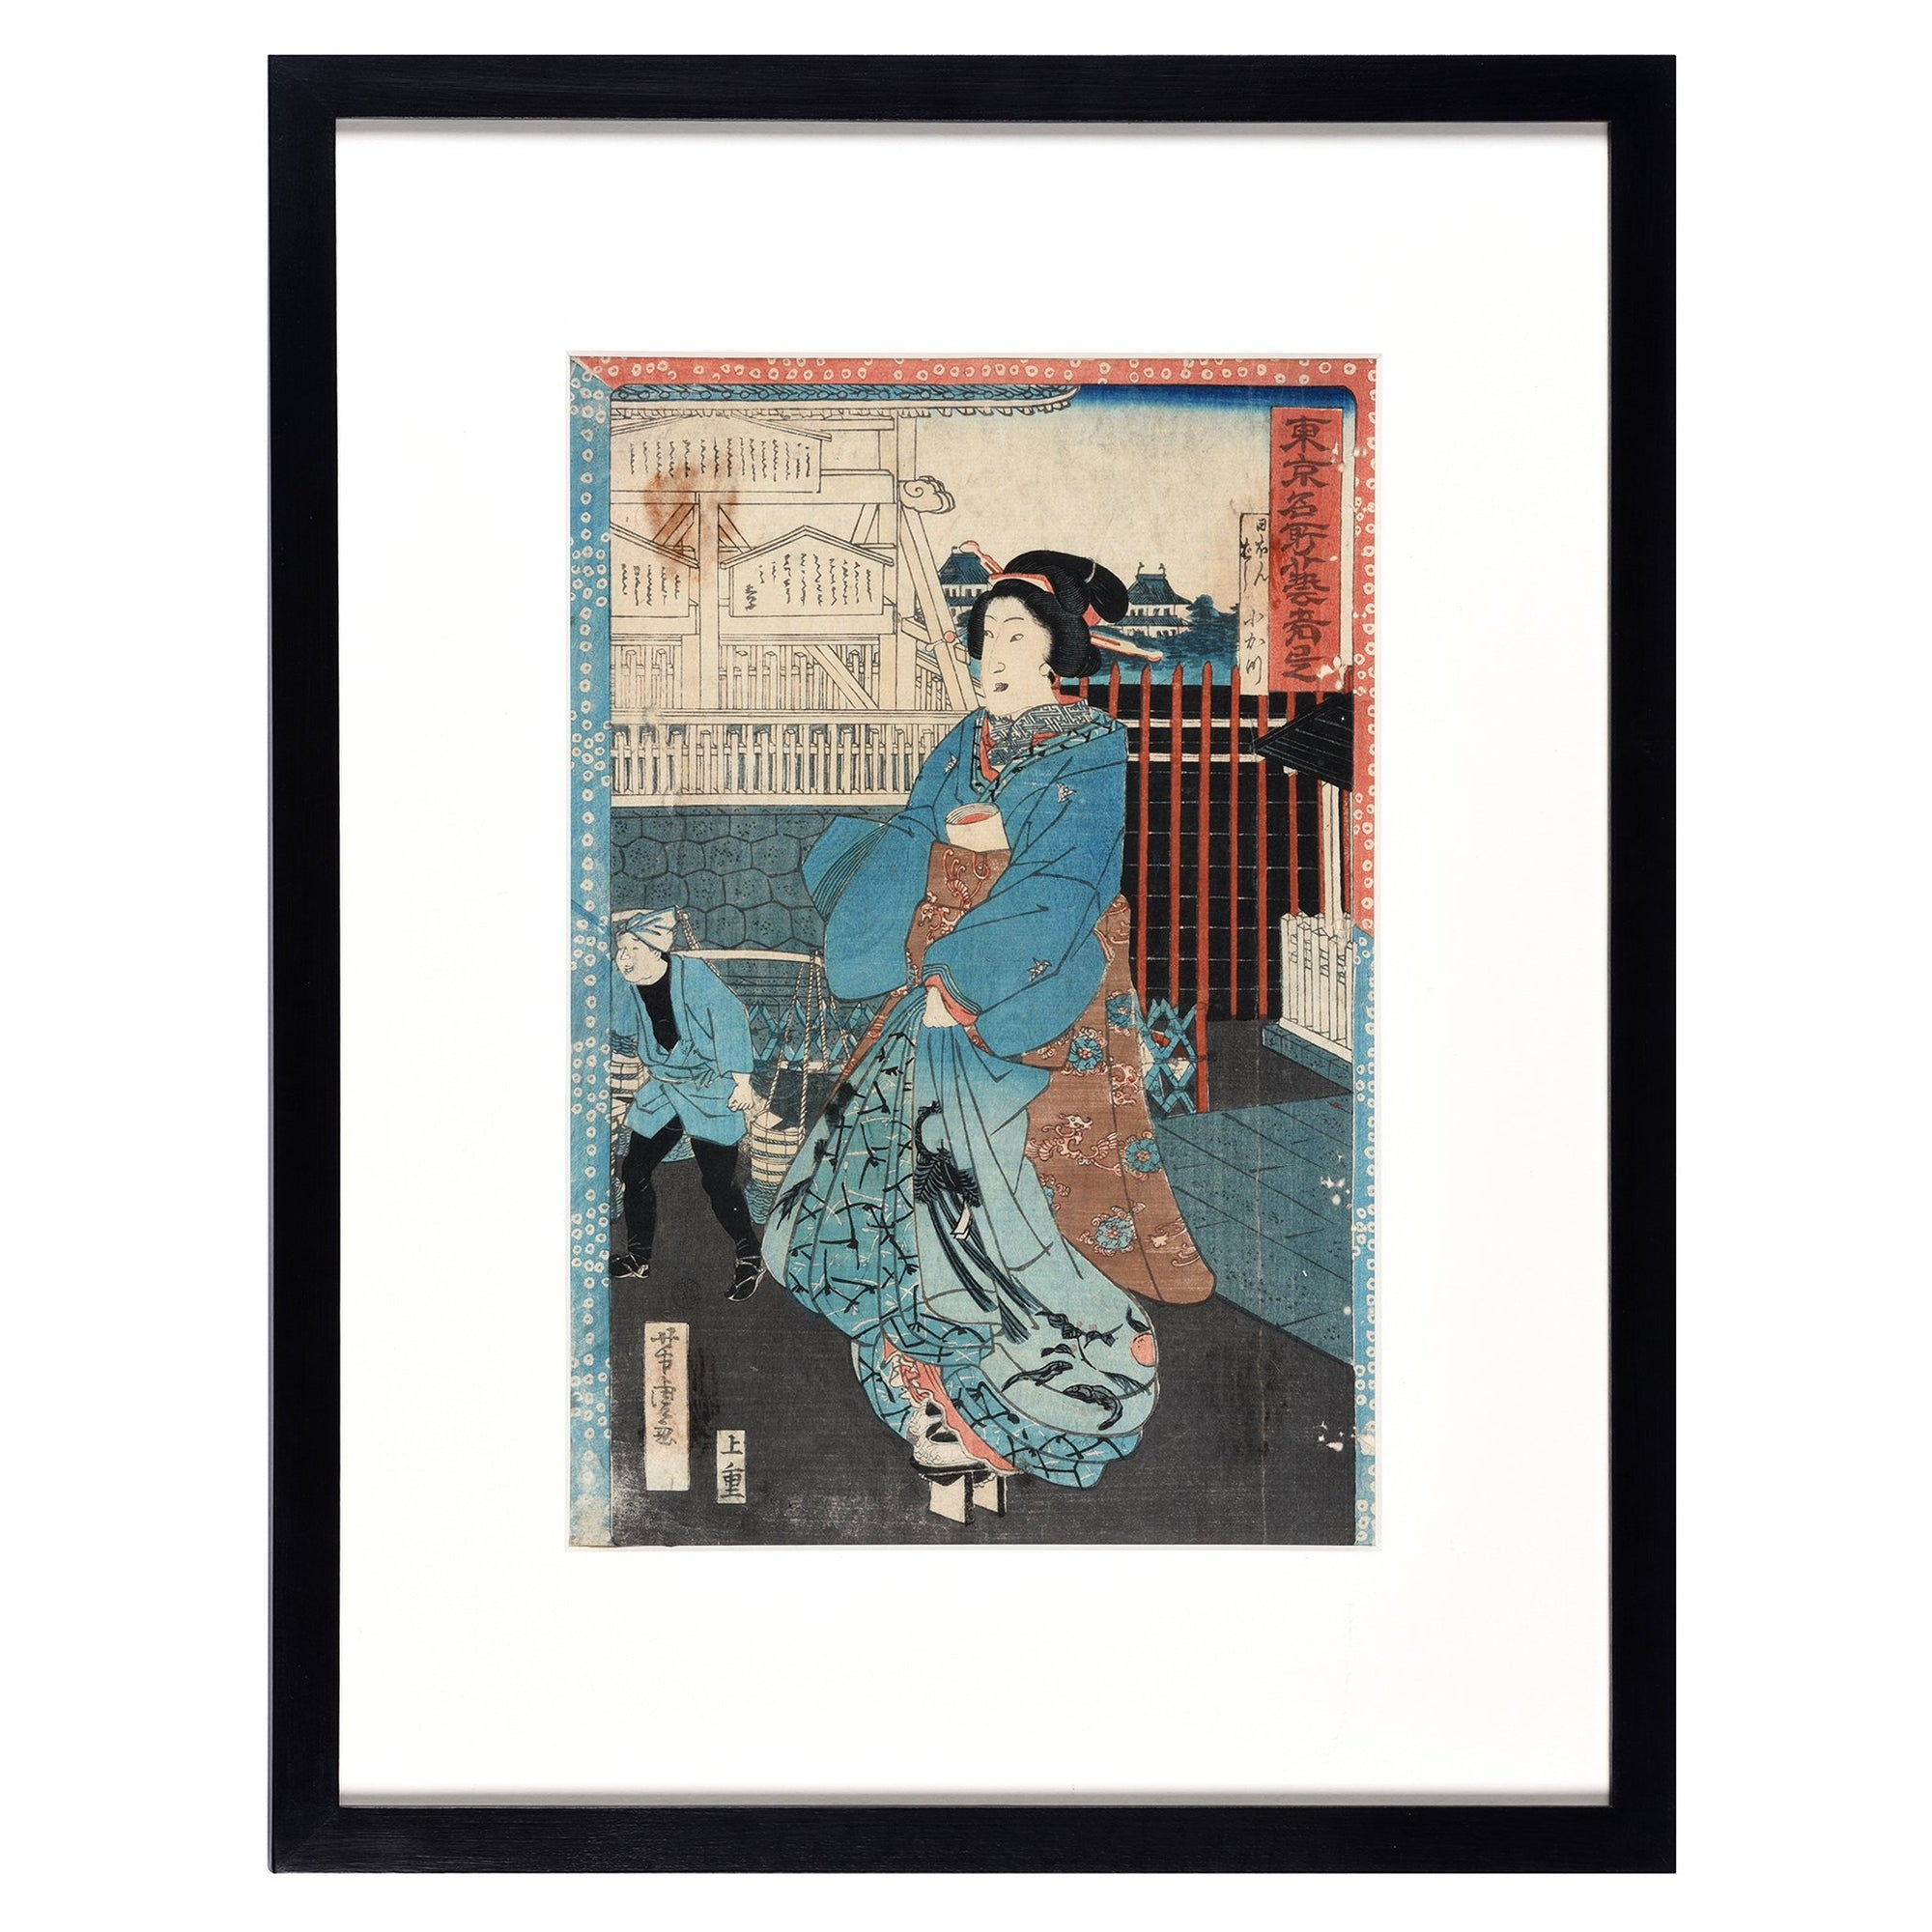 Framed Japanese Woodblock Print - Meiji Period | Indigo Antiques